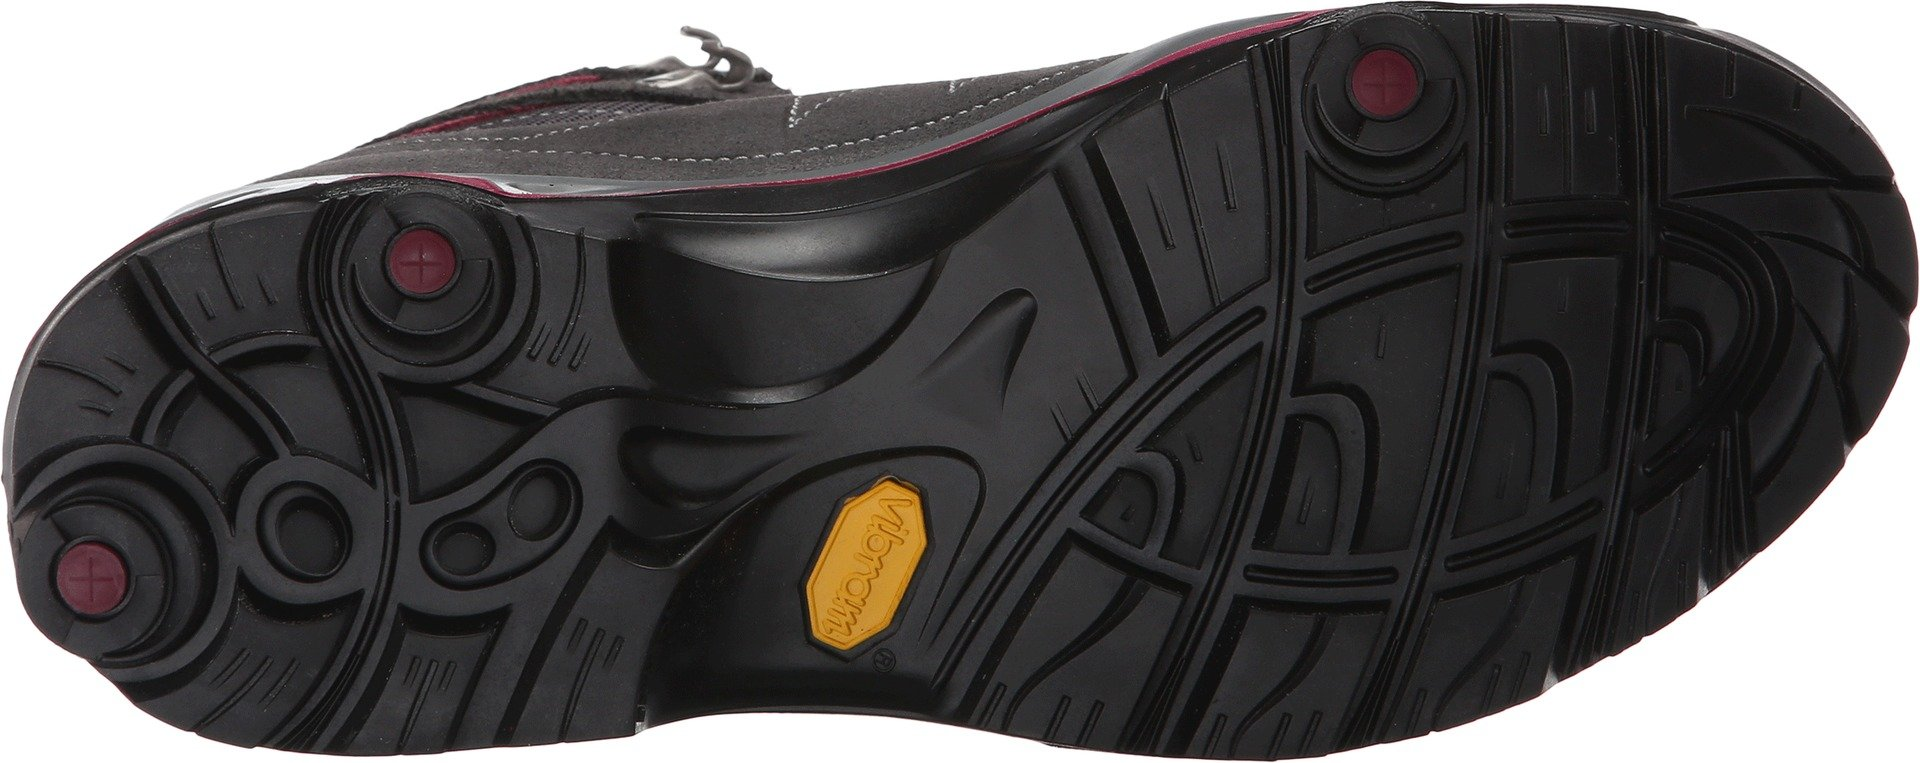 Asolo Women's TPS Equalon GV EVO Graphite/Red Bud 6 B US by Asolo (Image #3)